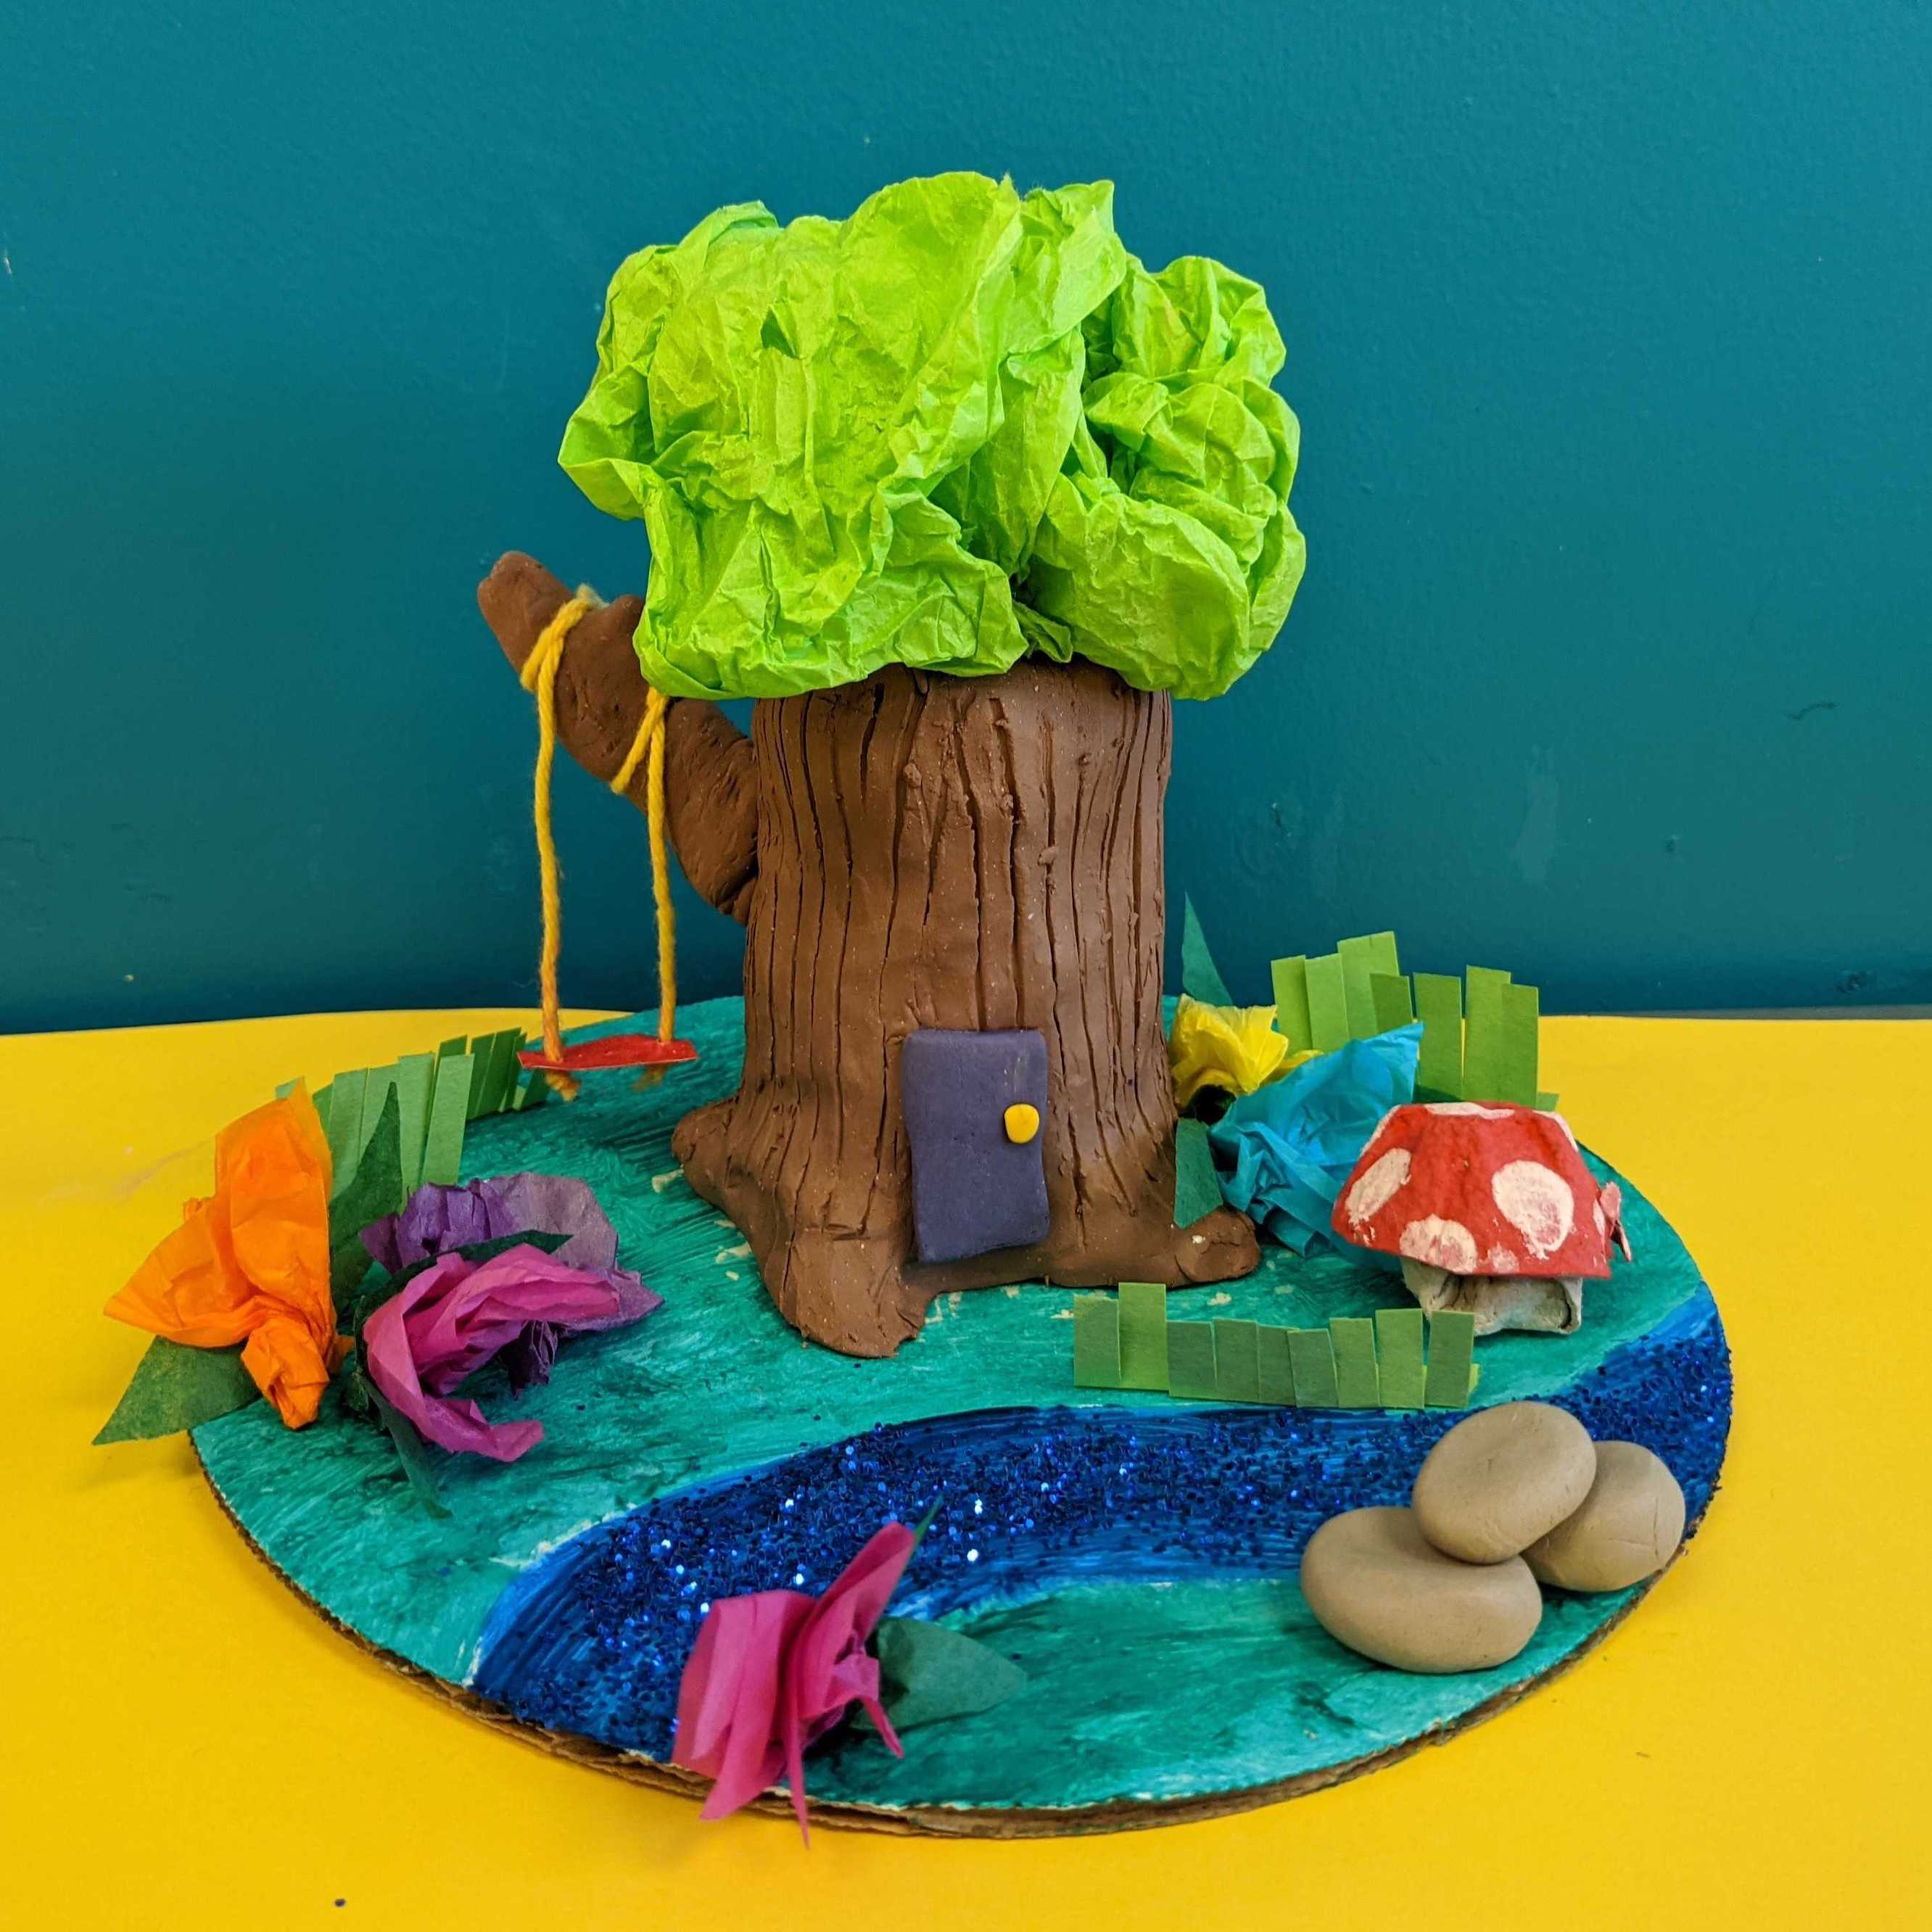 Kidcreate Studio, Fairy Garden Art Project